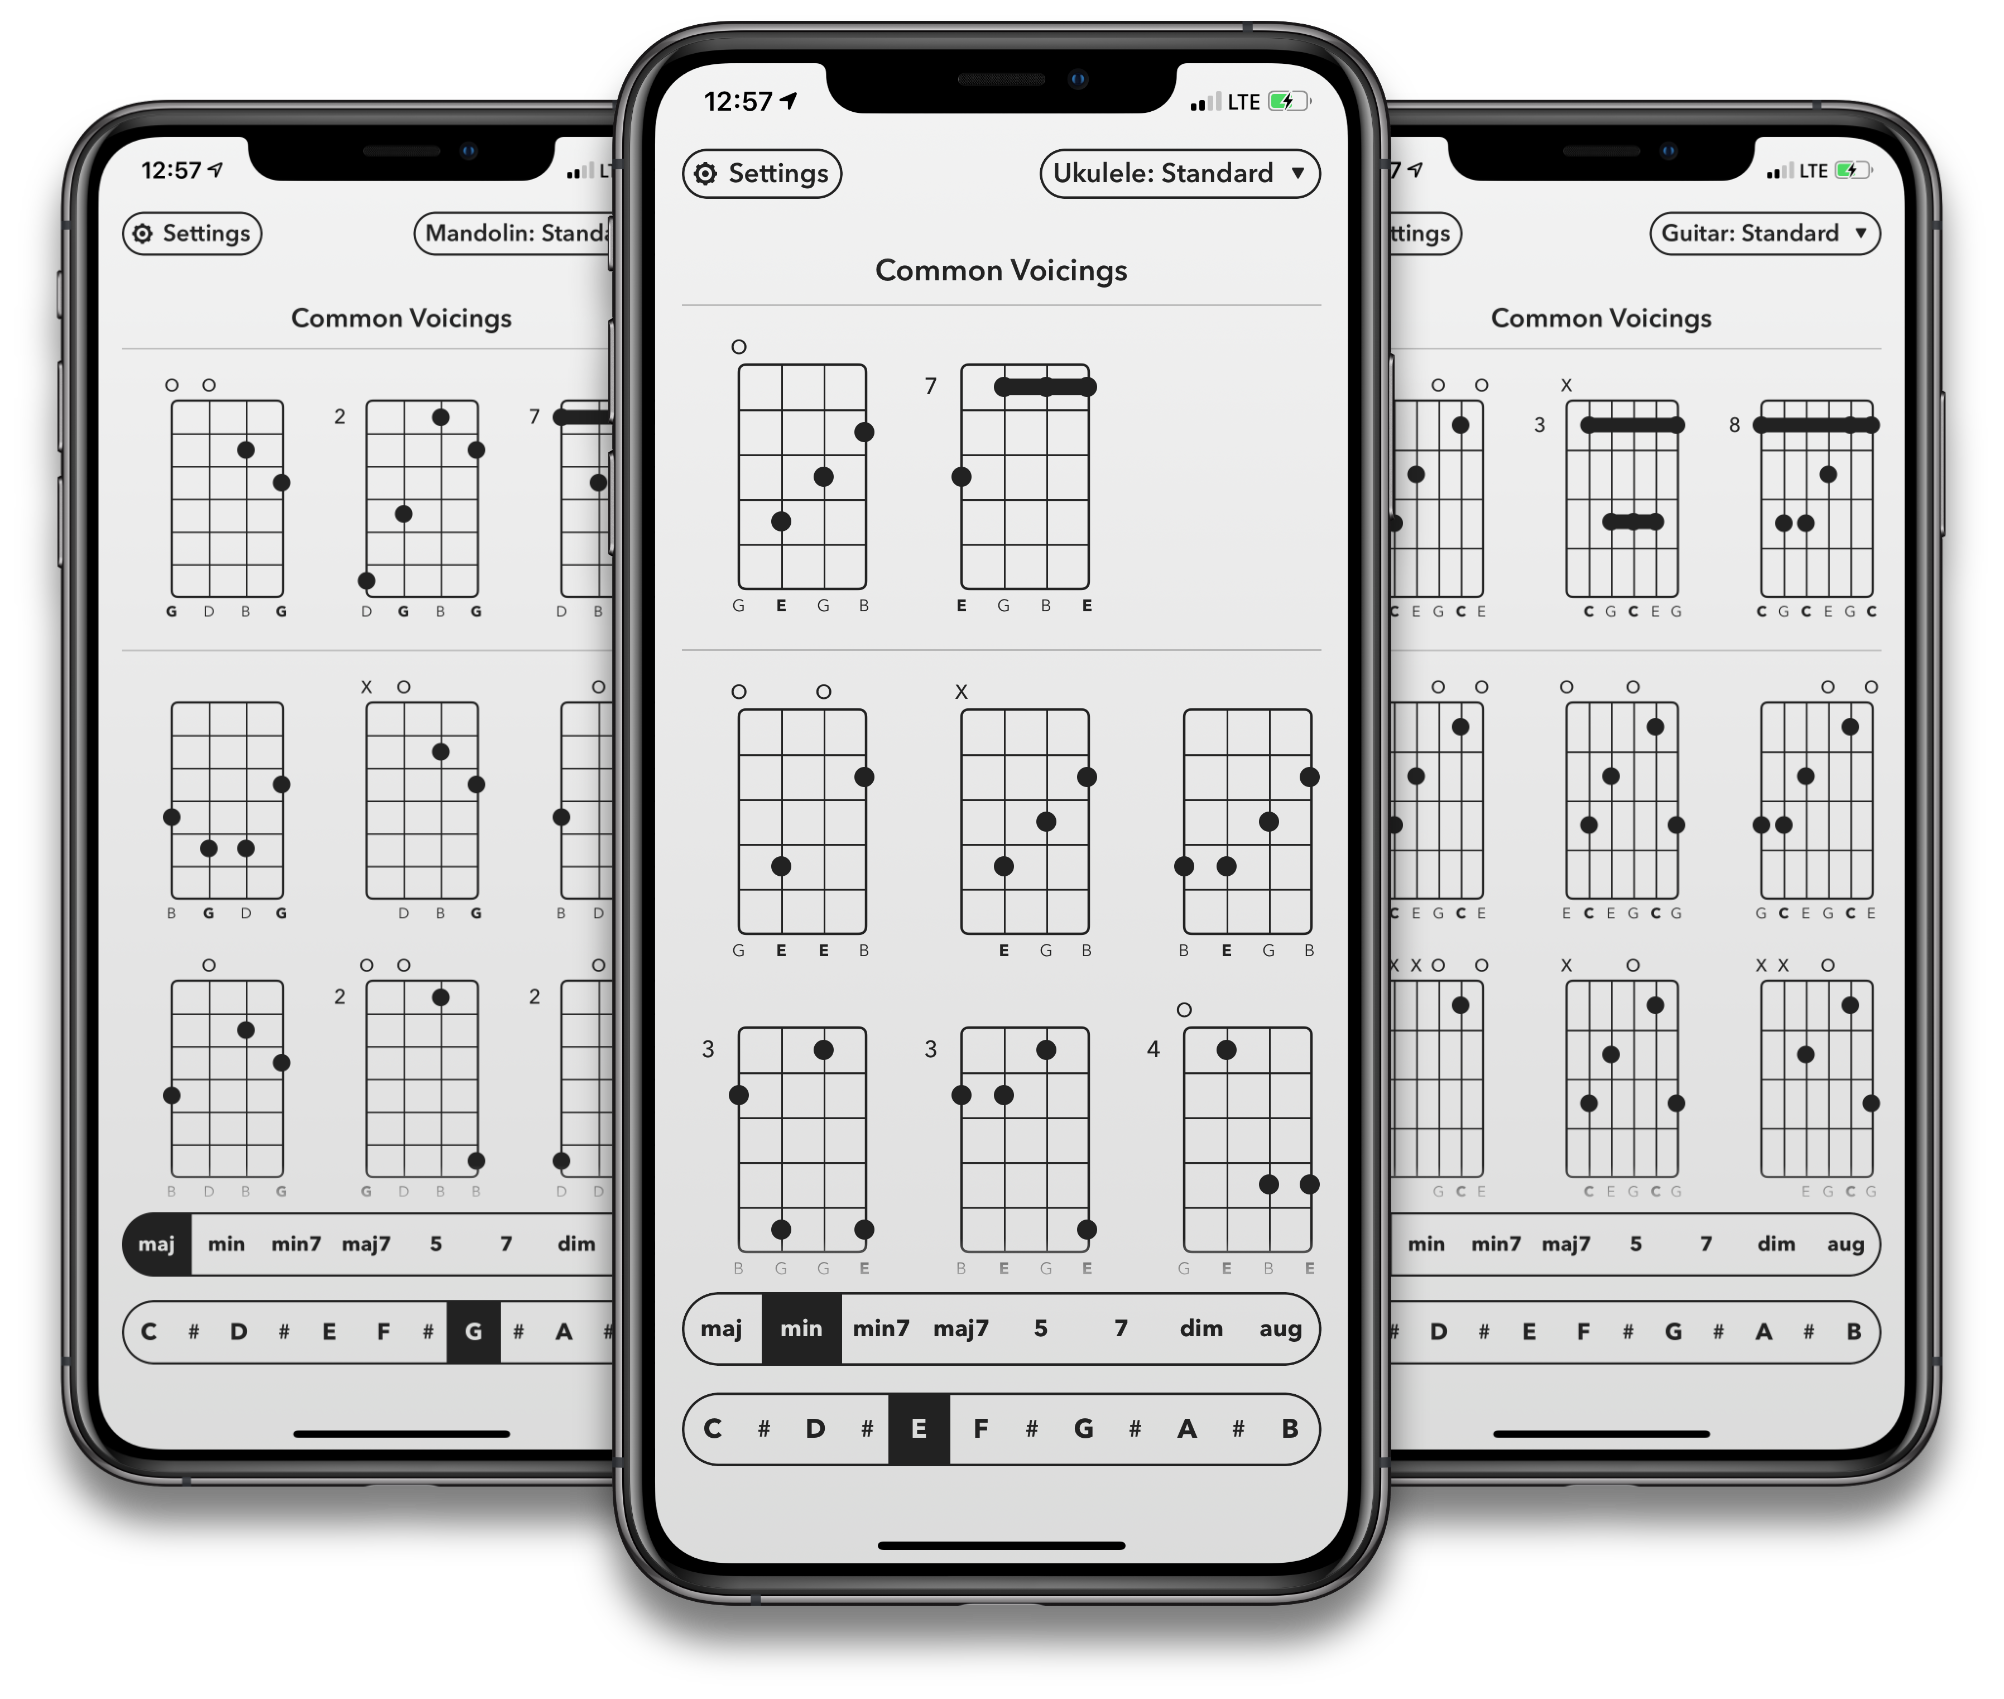 Shots of Selah Chords on iPhone.